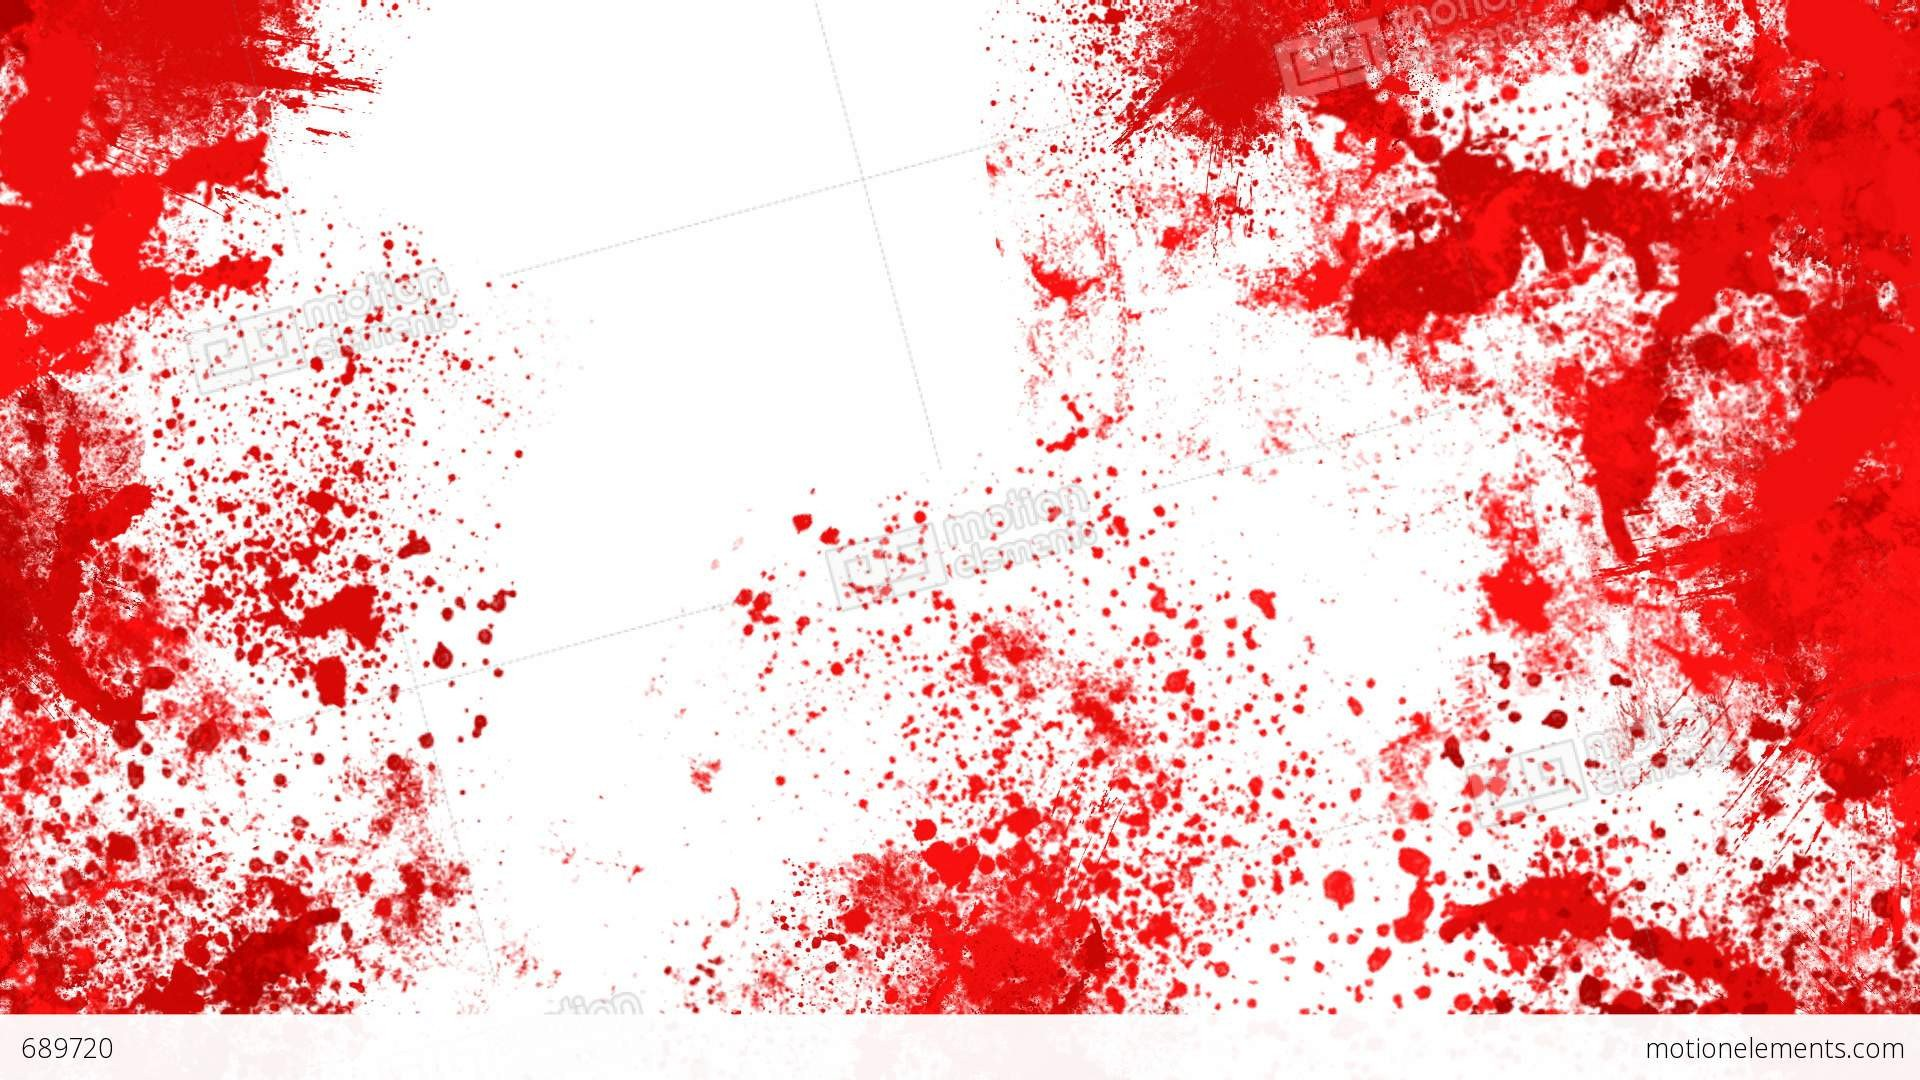 Blood Splatter Powerpoint Templates Blood Splashes Stock Animation